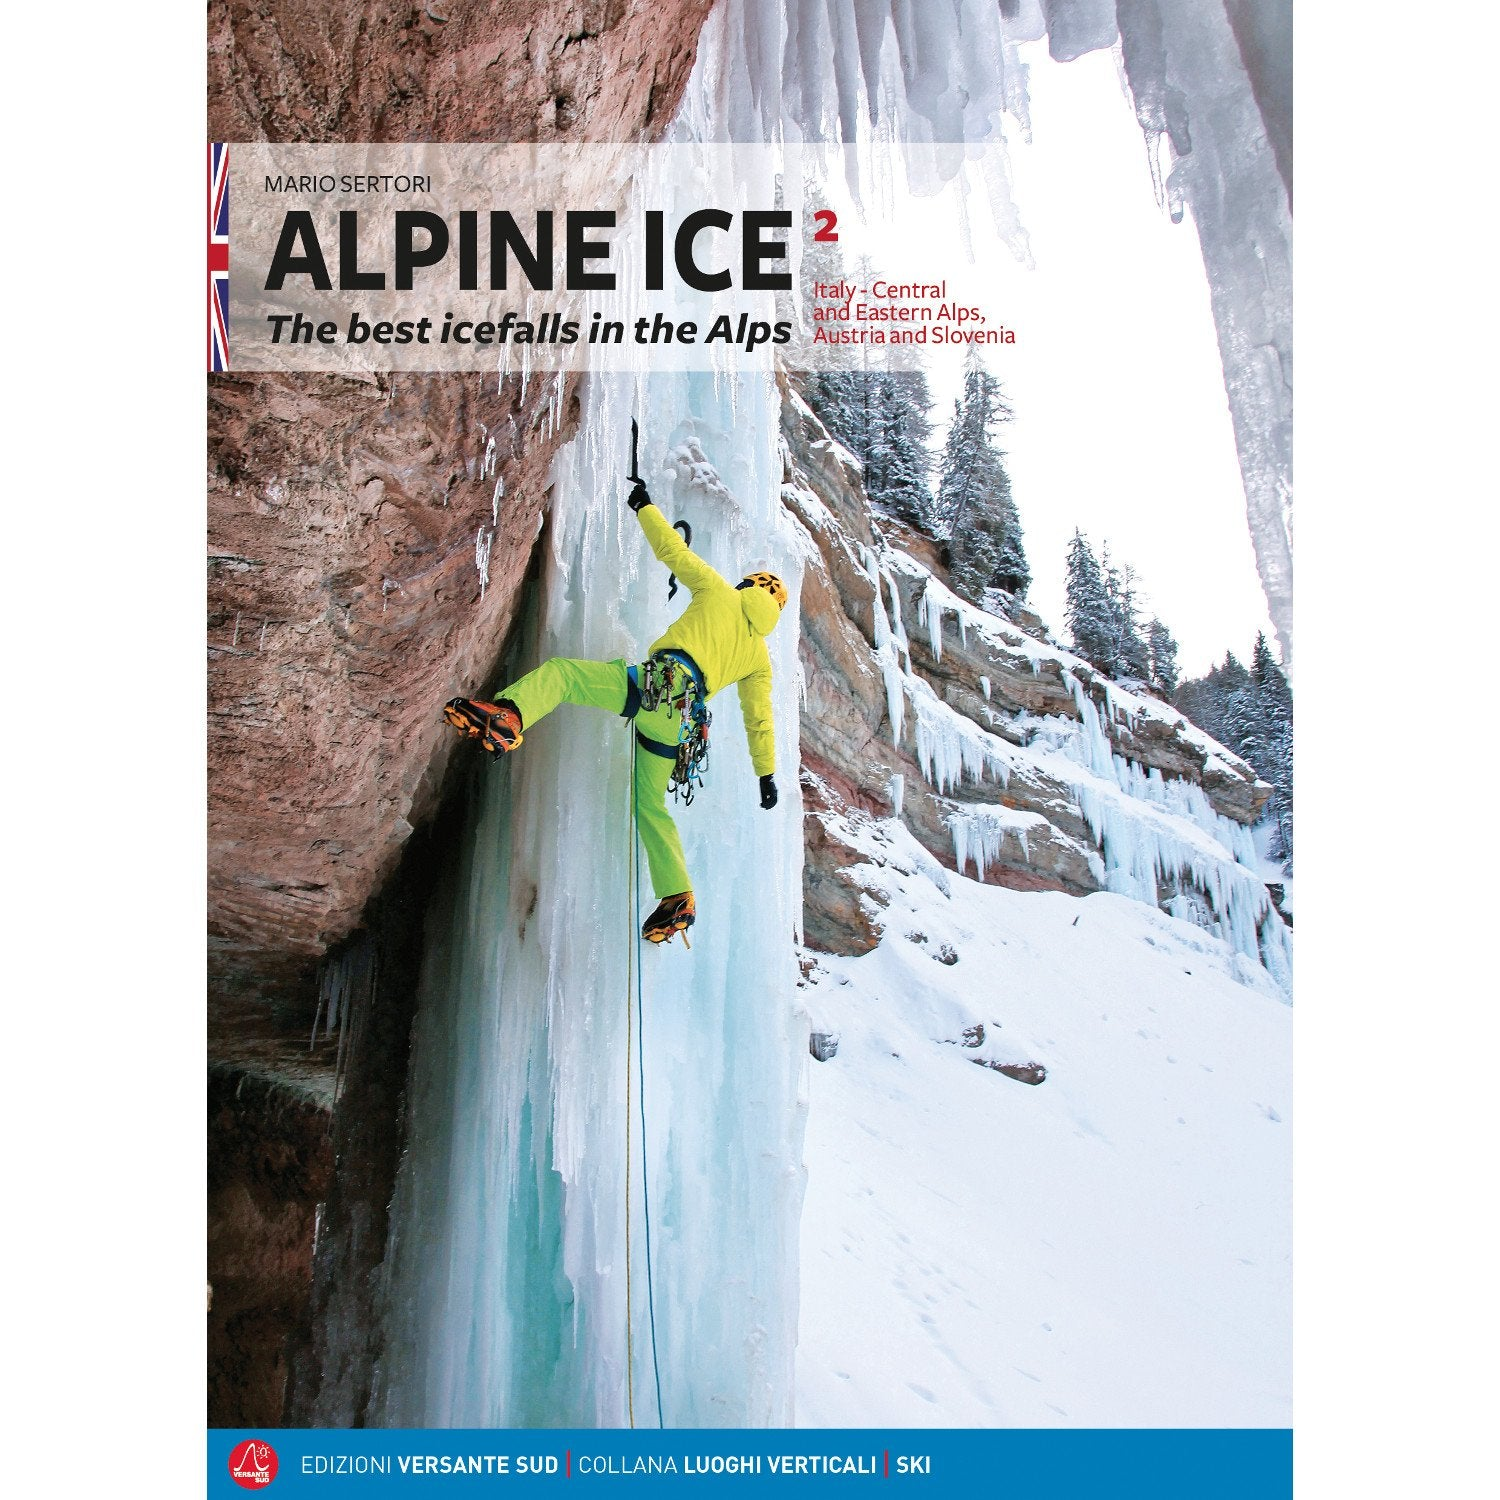 Alpine Ice - The Best Icefalls in the Alps Vol. 2